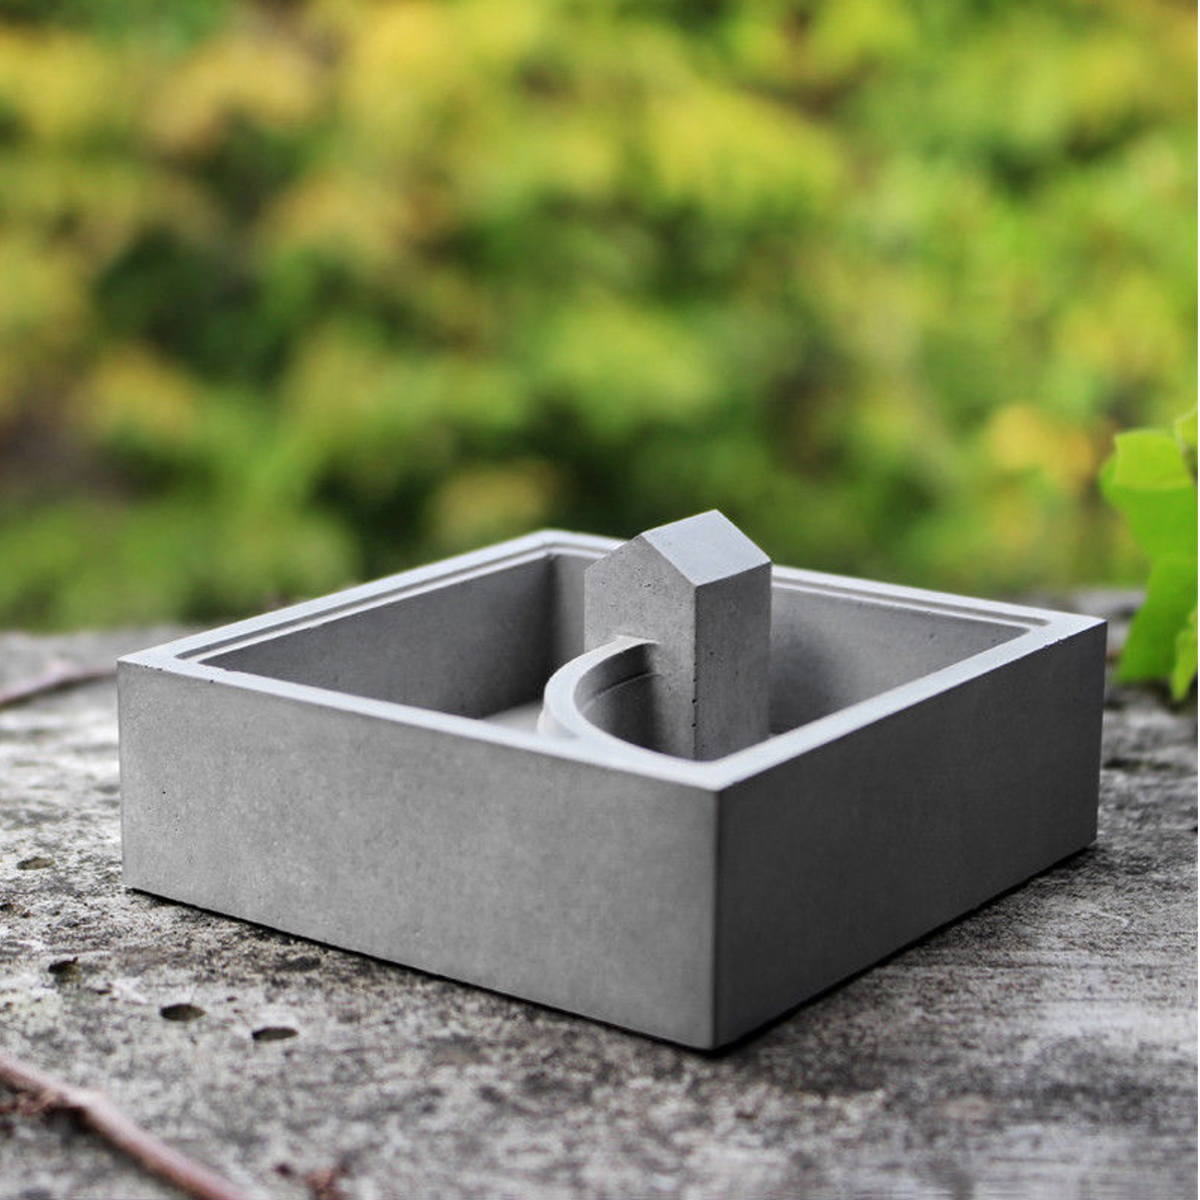 Silicone Concrete Flower Pot Mold 3D Handmade DIY Succulent Planter Candle Soap Cement Mould Decor